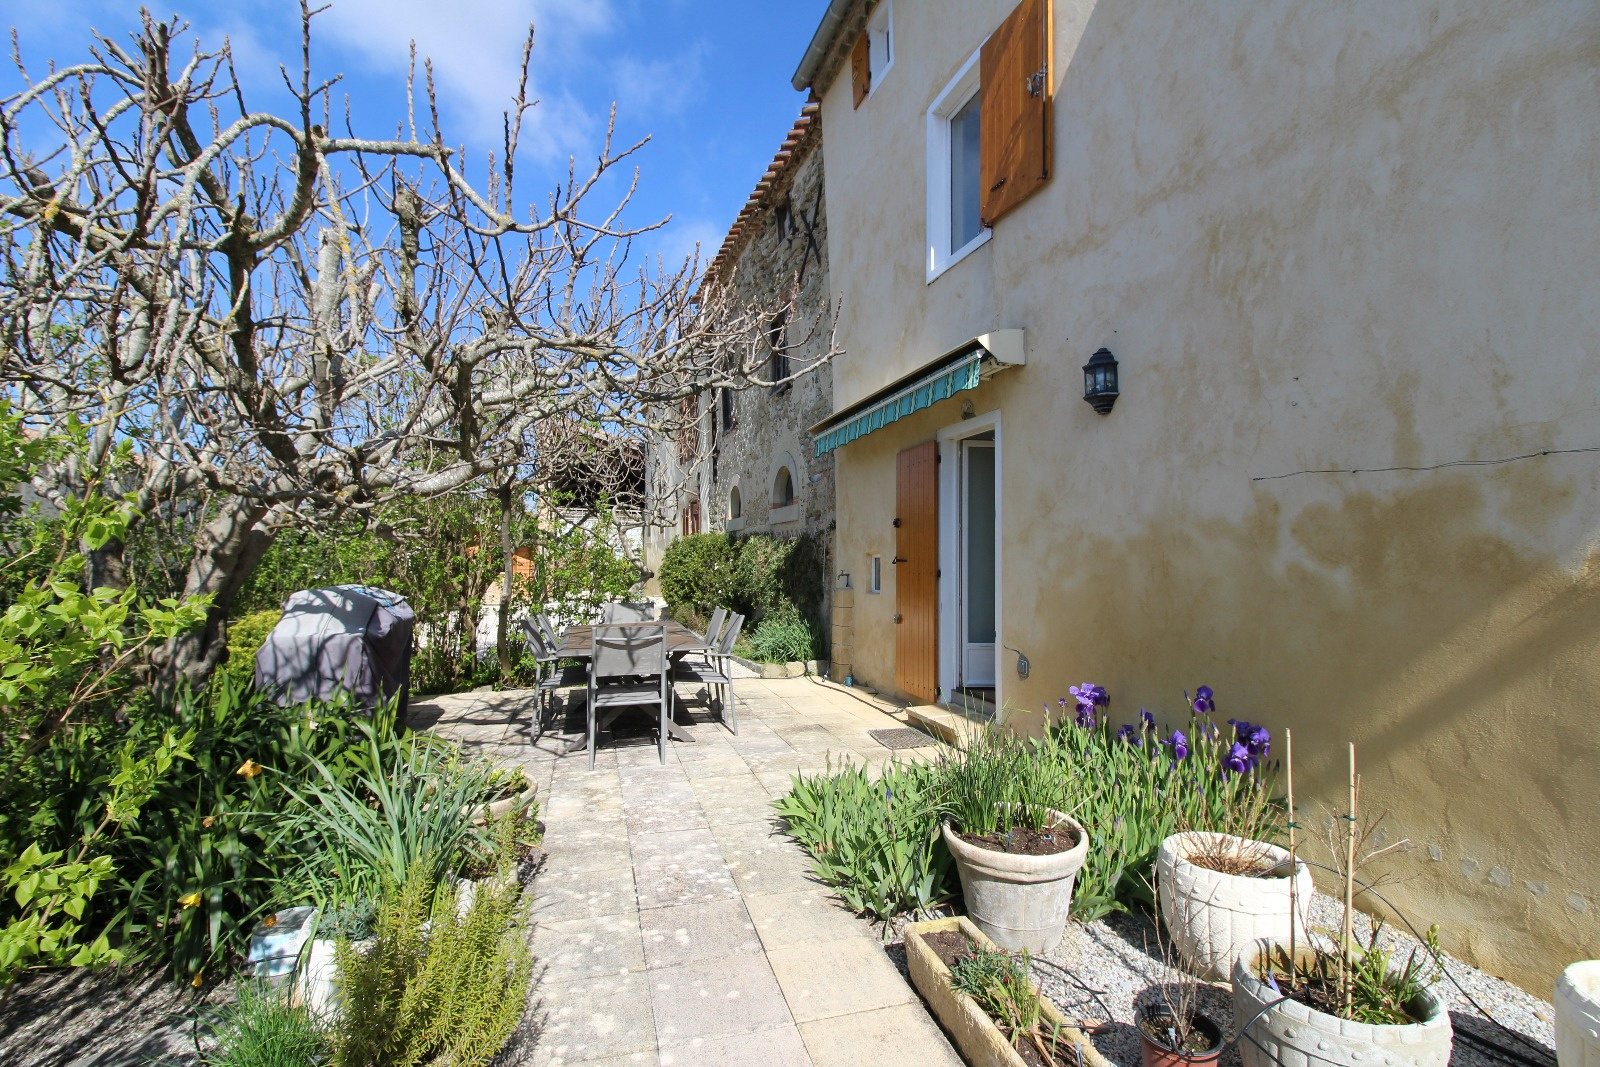 Bac immobilier limoux carcassonne vente et location for Location vente immeuble